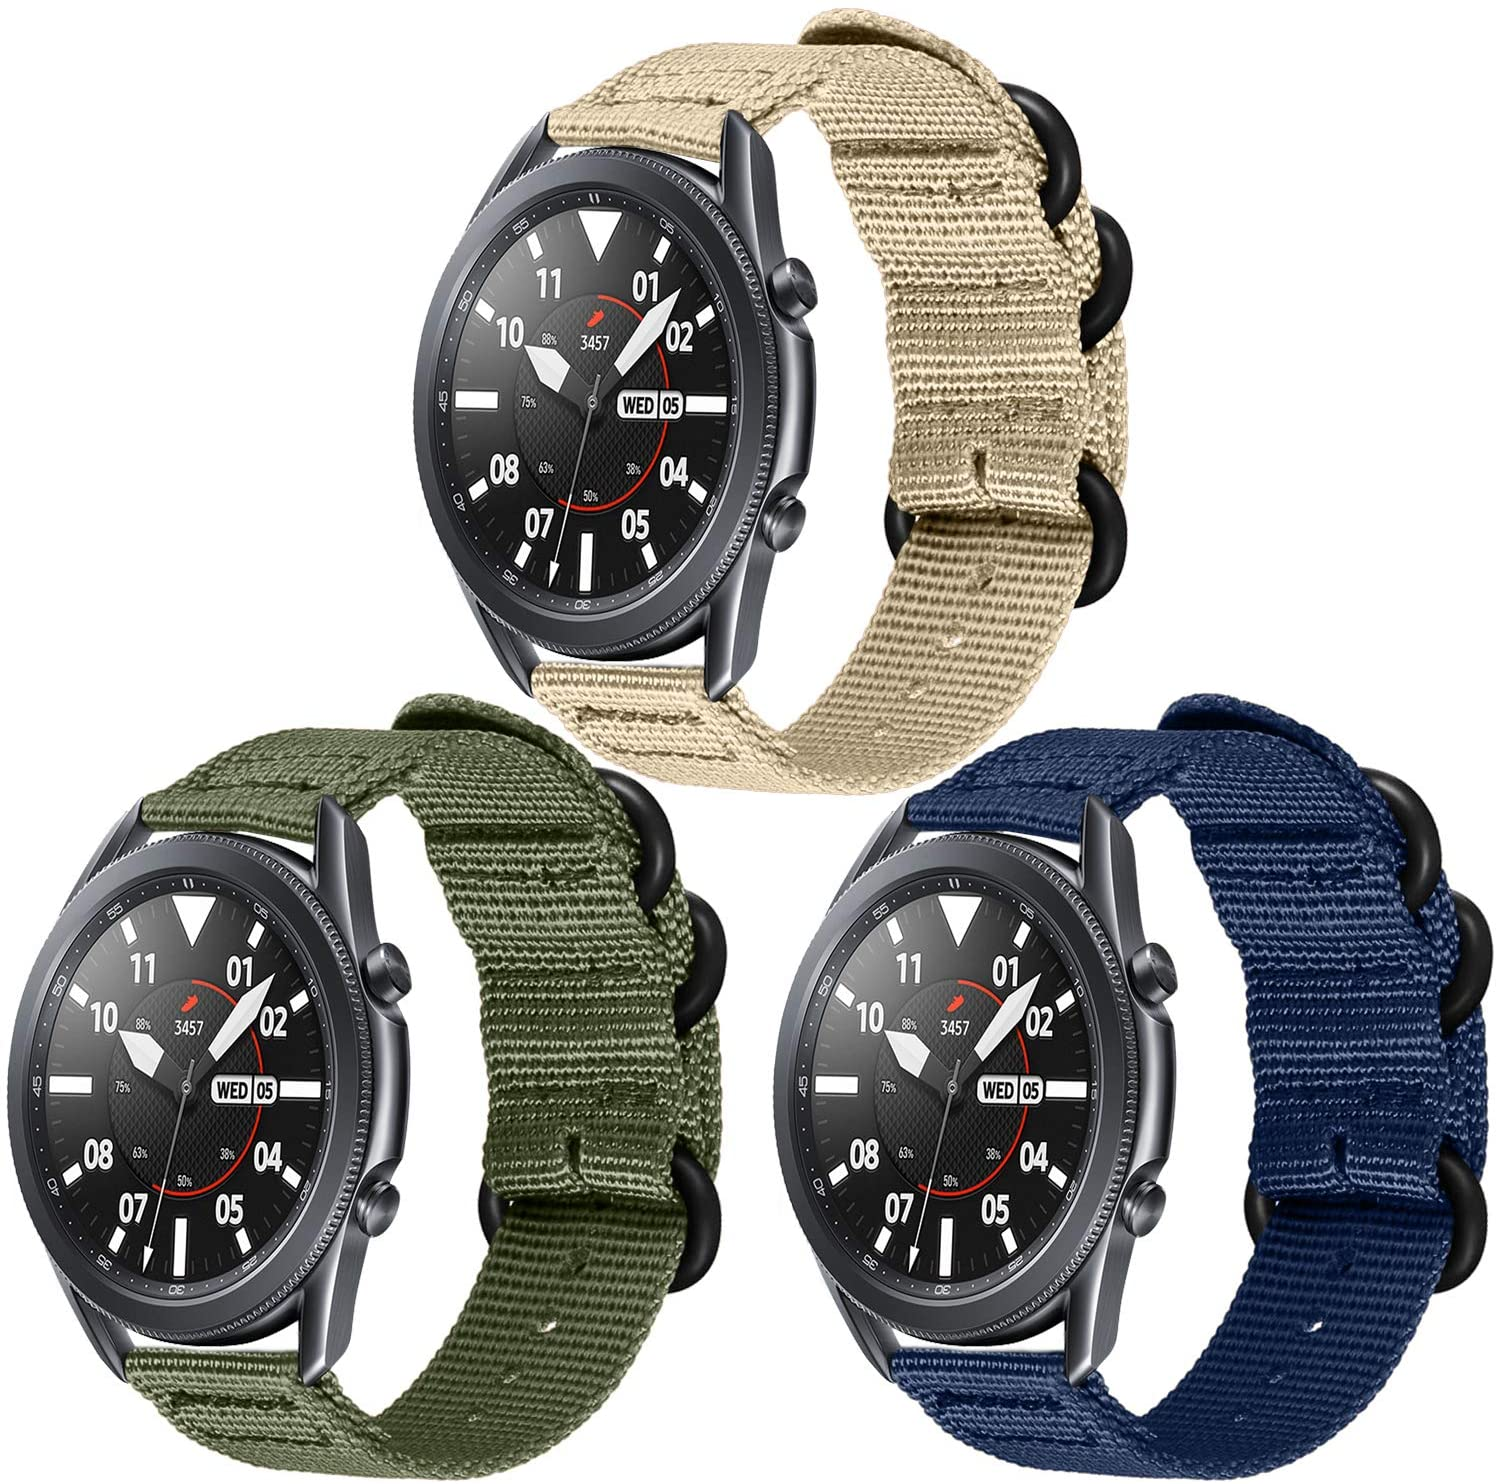 Stan Lee Bands Compatible with Gear S3/ Galaxy Watch 3 45mm / Galaxy Watch 46mm, 22mm Quick Release Adjustable Replacement Sport Strap Compatible with Frontier Smartwatch&Samsung Gear S3 Classic